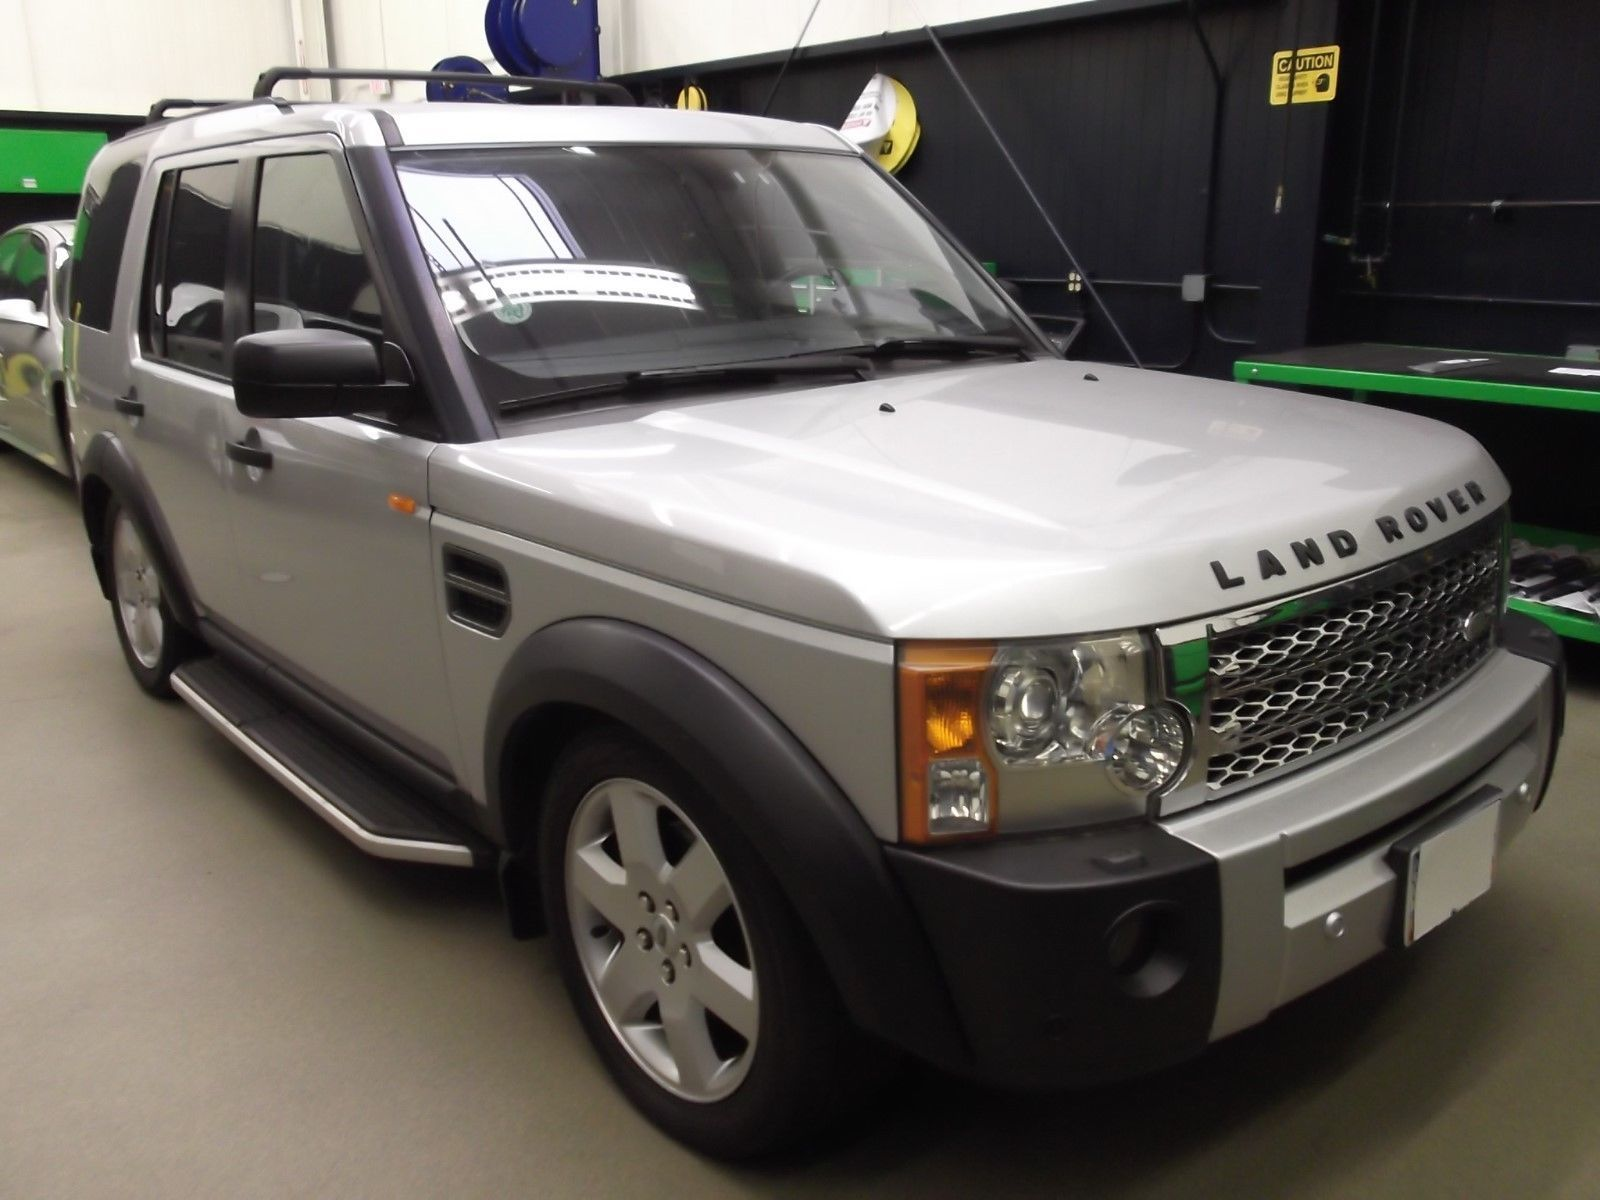 2006 Land Rover LR3 Leather/Wood Grain 2006 Land Rover LR3